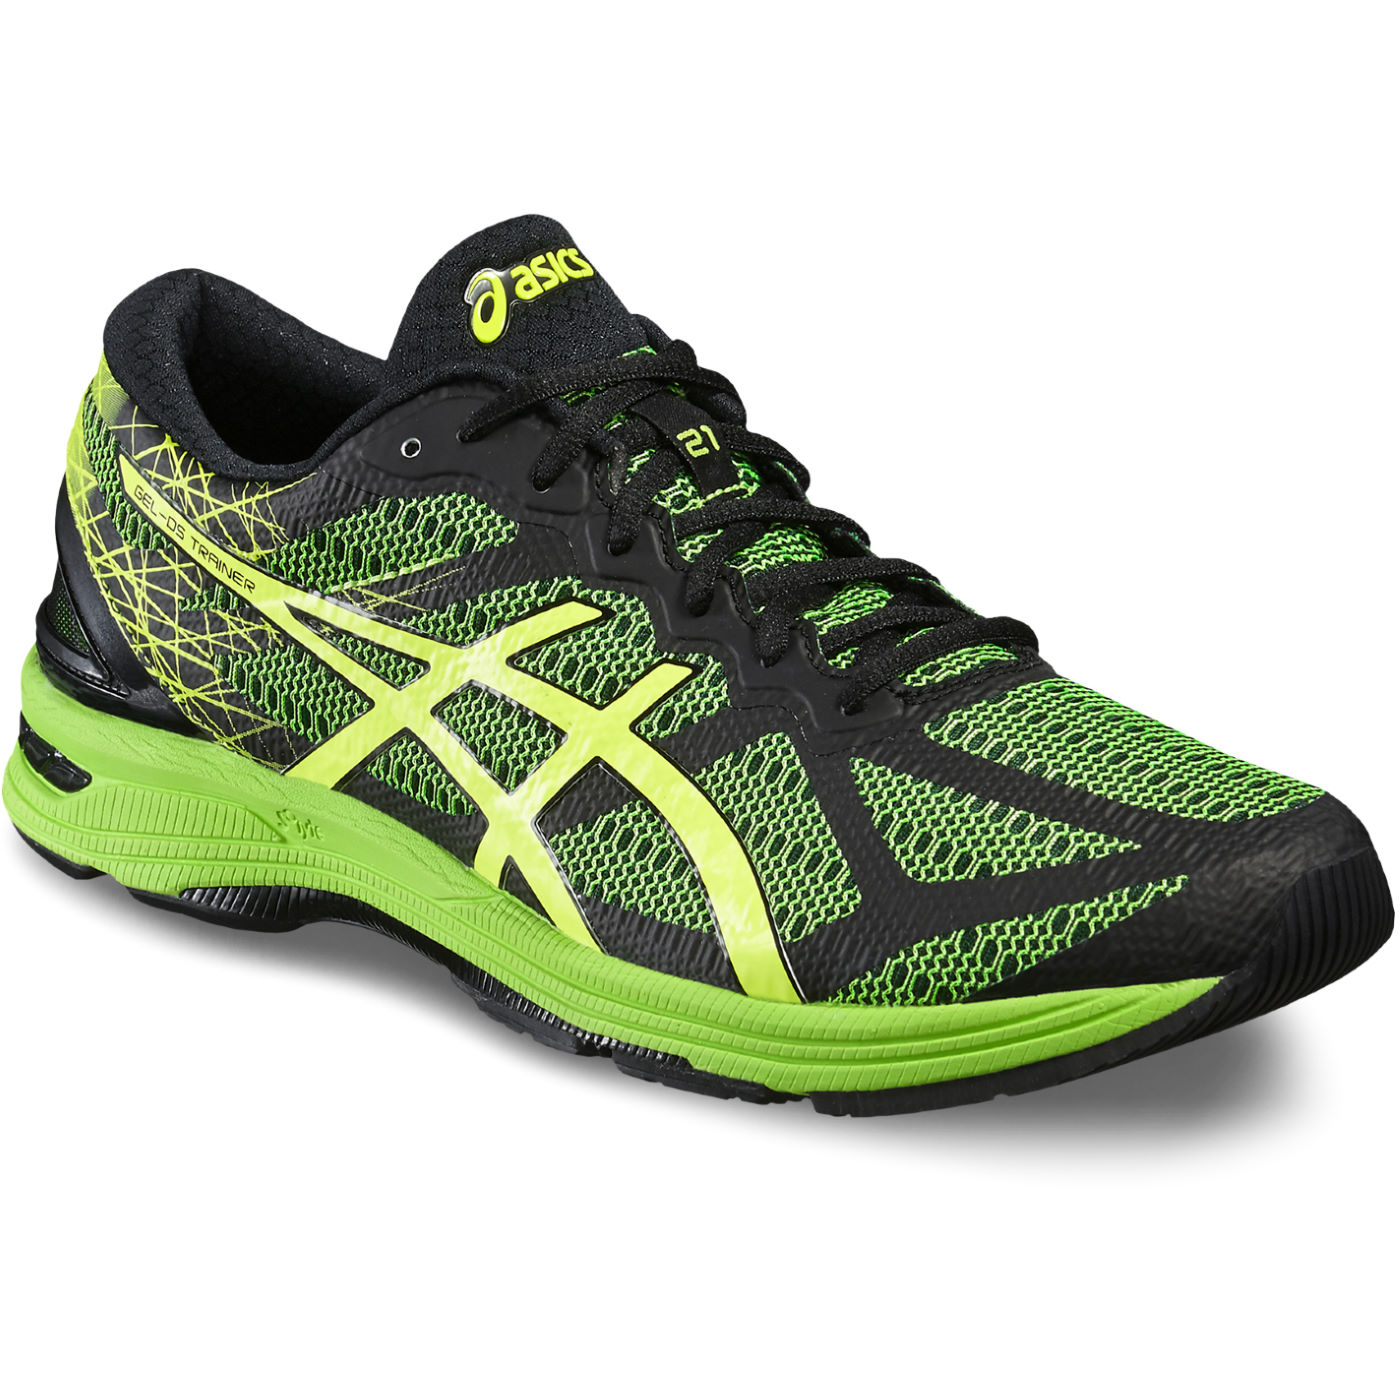 83552912794 ... Asics Gel DS Trainer 21 Shoes AW16 Racing Running Shoes Black Safety  Yellow